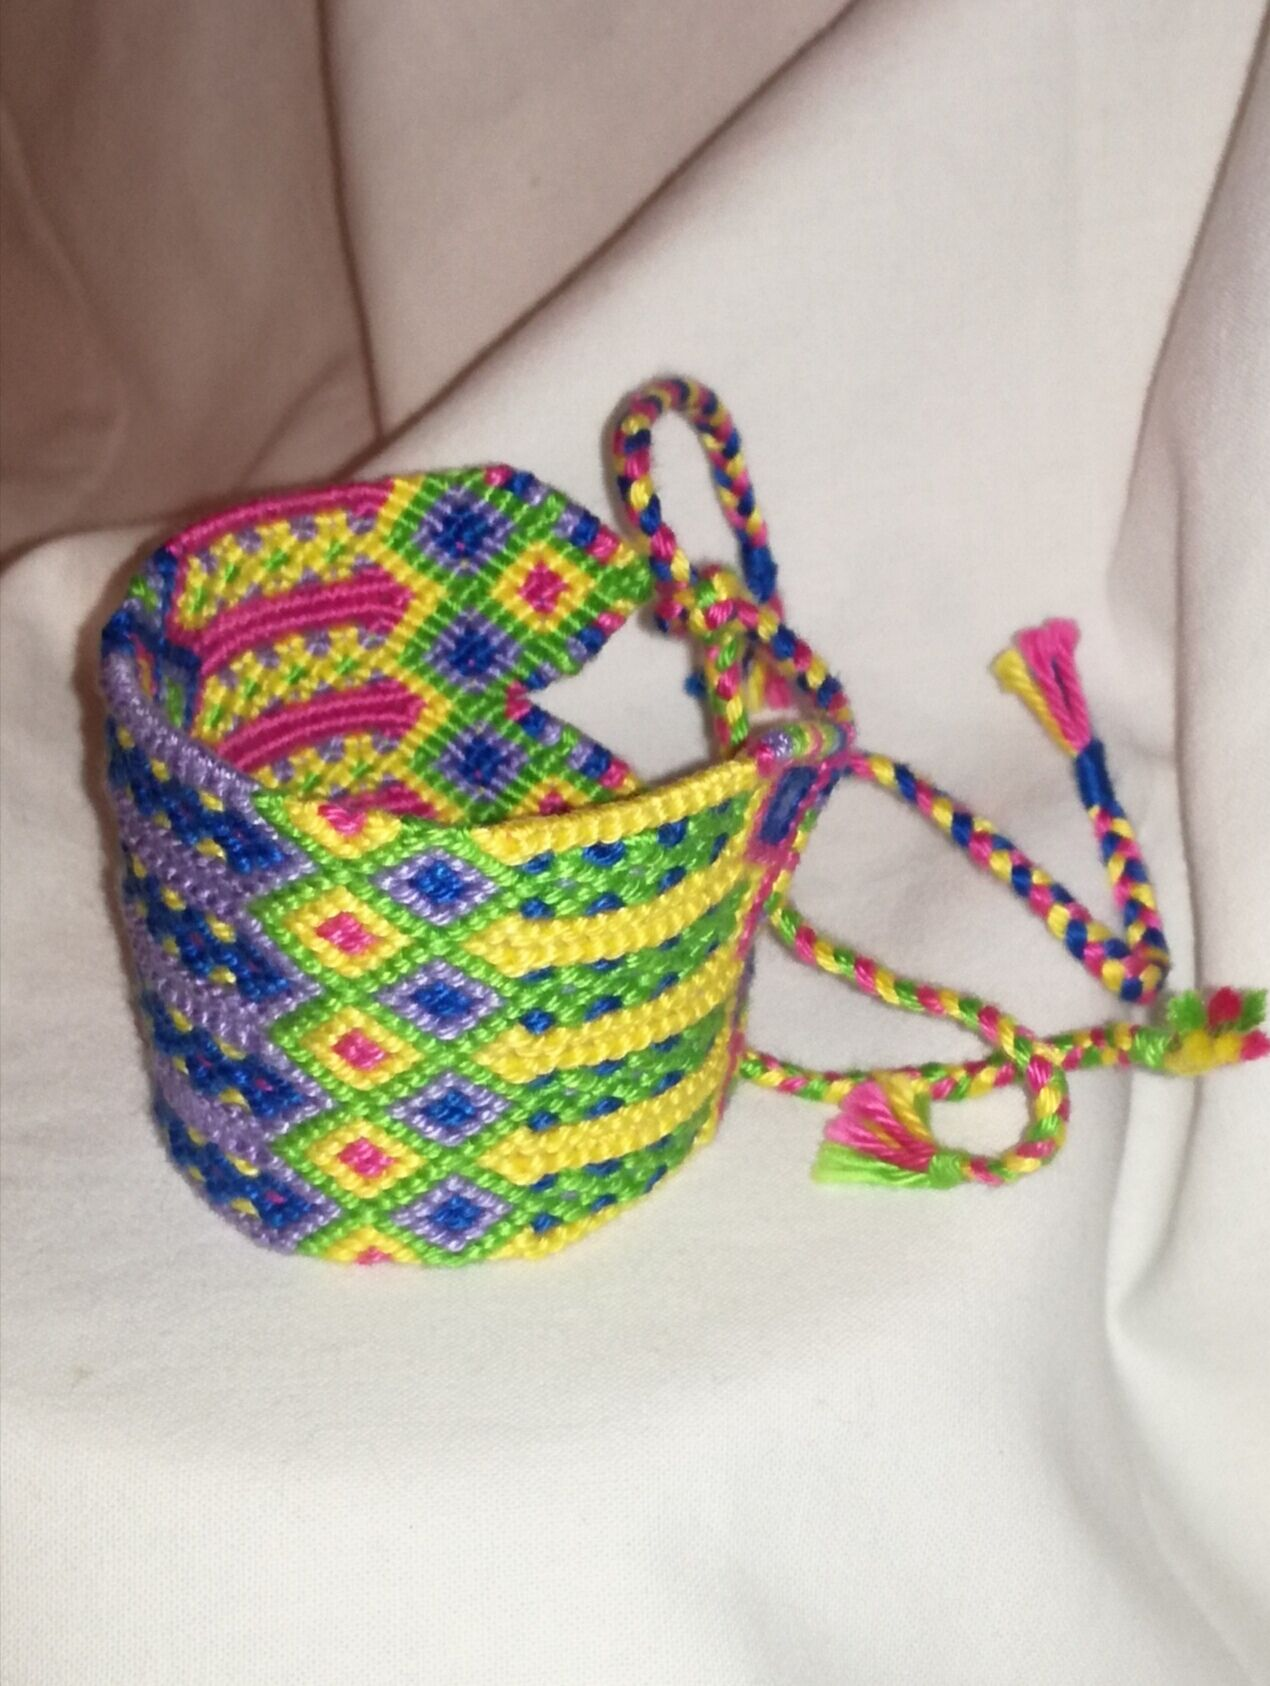 colourful handwoven unique gift wrist band boho style friendship bracelet wayuu braided string knitted